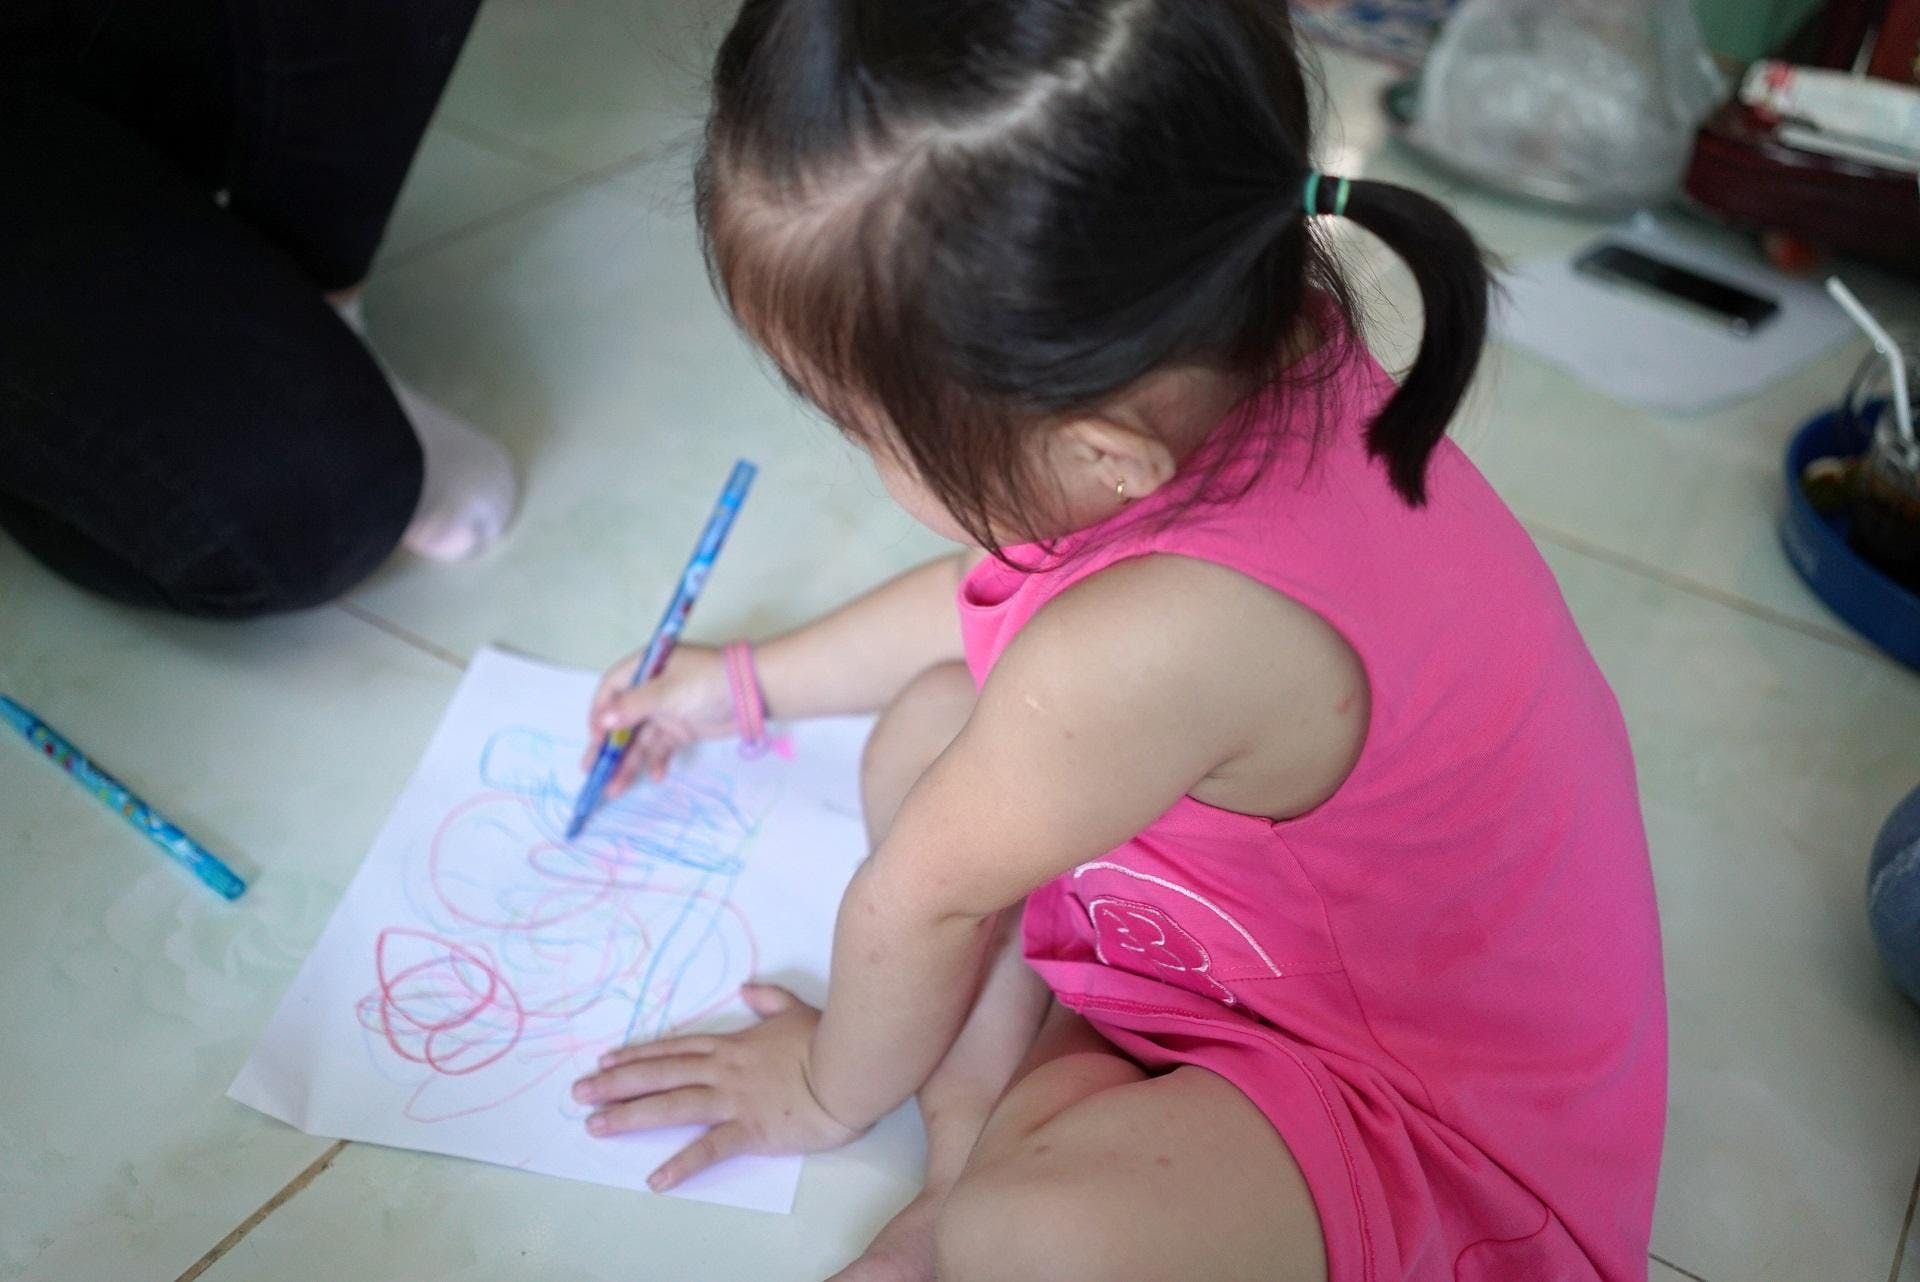 Three-year-old Truc was treated for strabismus by Orbis trained eye doctors in Vietnam